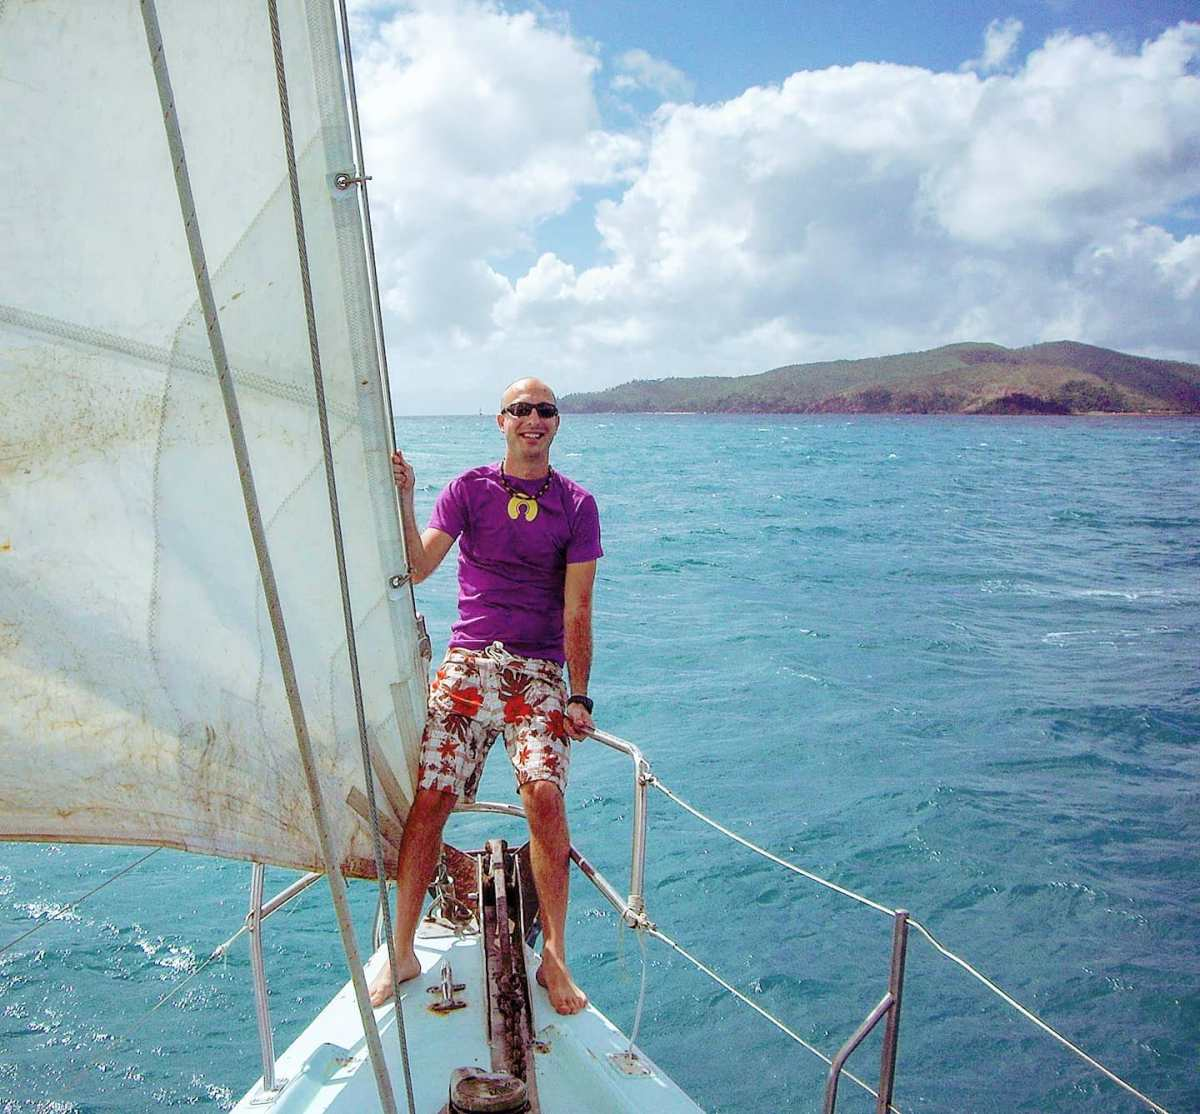 Sailing around the Whitsunday Islands 🤙Queensland, Australia 2008#australia #whitsundays #travel #naturephotography #travelphoto #travelingram #tbt #travellife #travelgram #naturegram #naturephoto #traveler #naturelover #nature #seaside #travelphotography #sea #traveller #traveling #blue #travelblog #sailing #naturelovers #traveladdict #travels #clouds #tallship